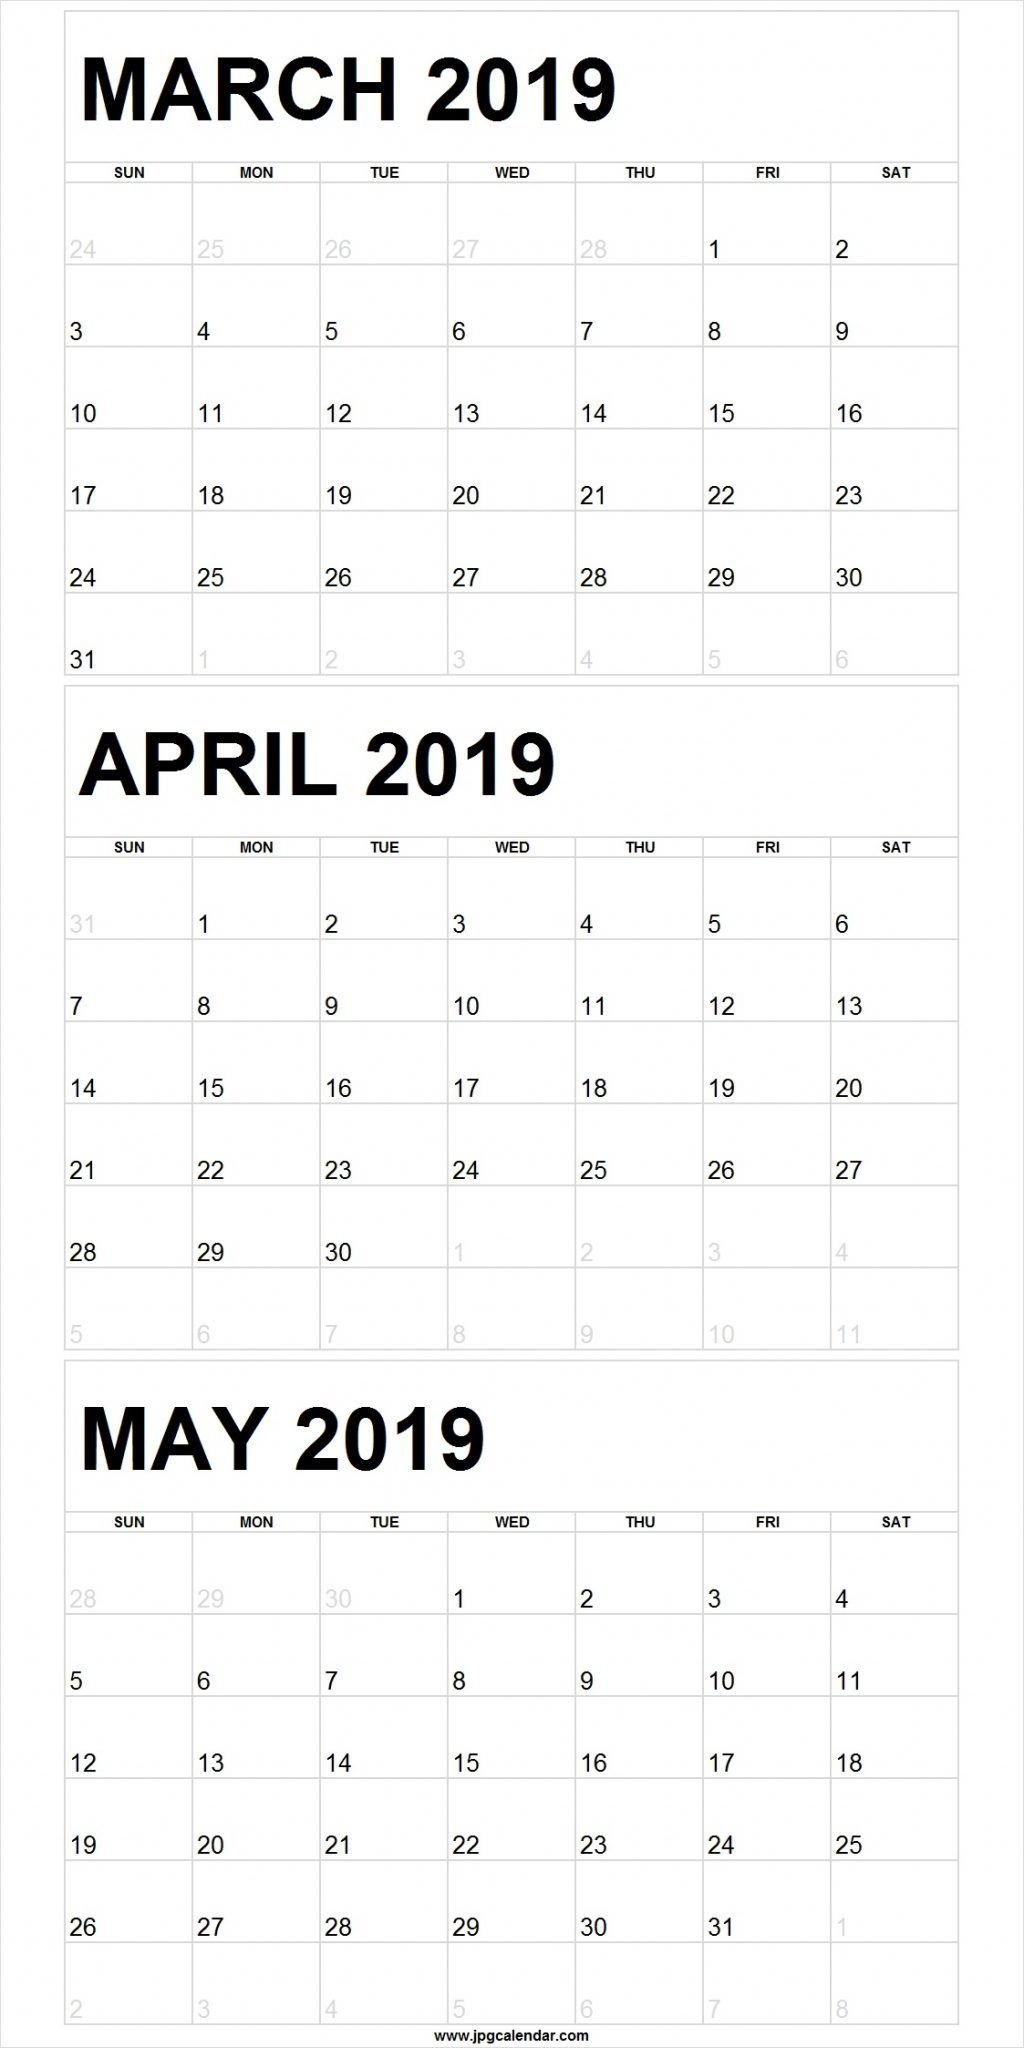 Blank March To May 2019 Calendar Printable | 250+ Free Monthly August 3 2019 Calendar